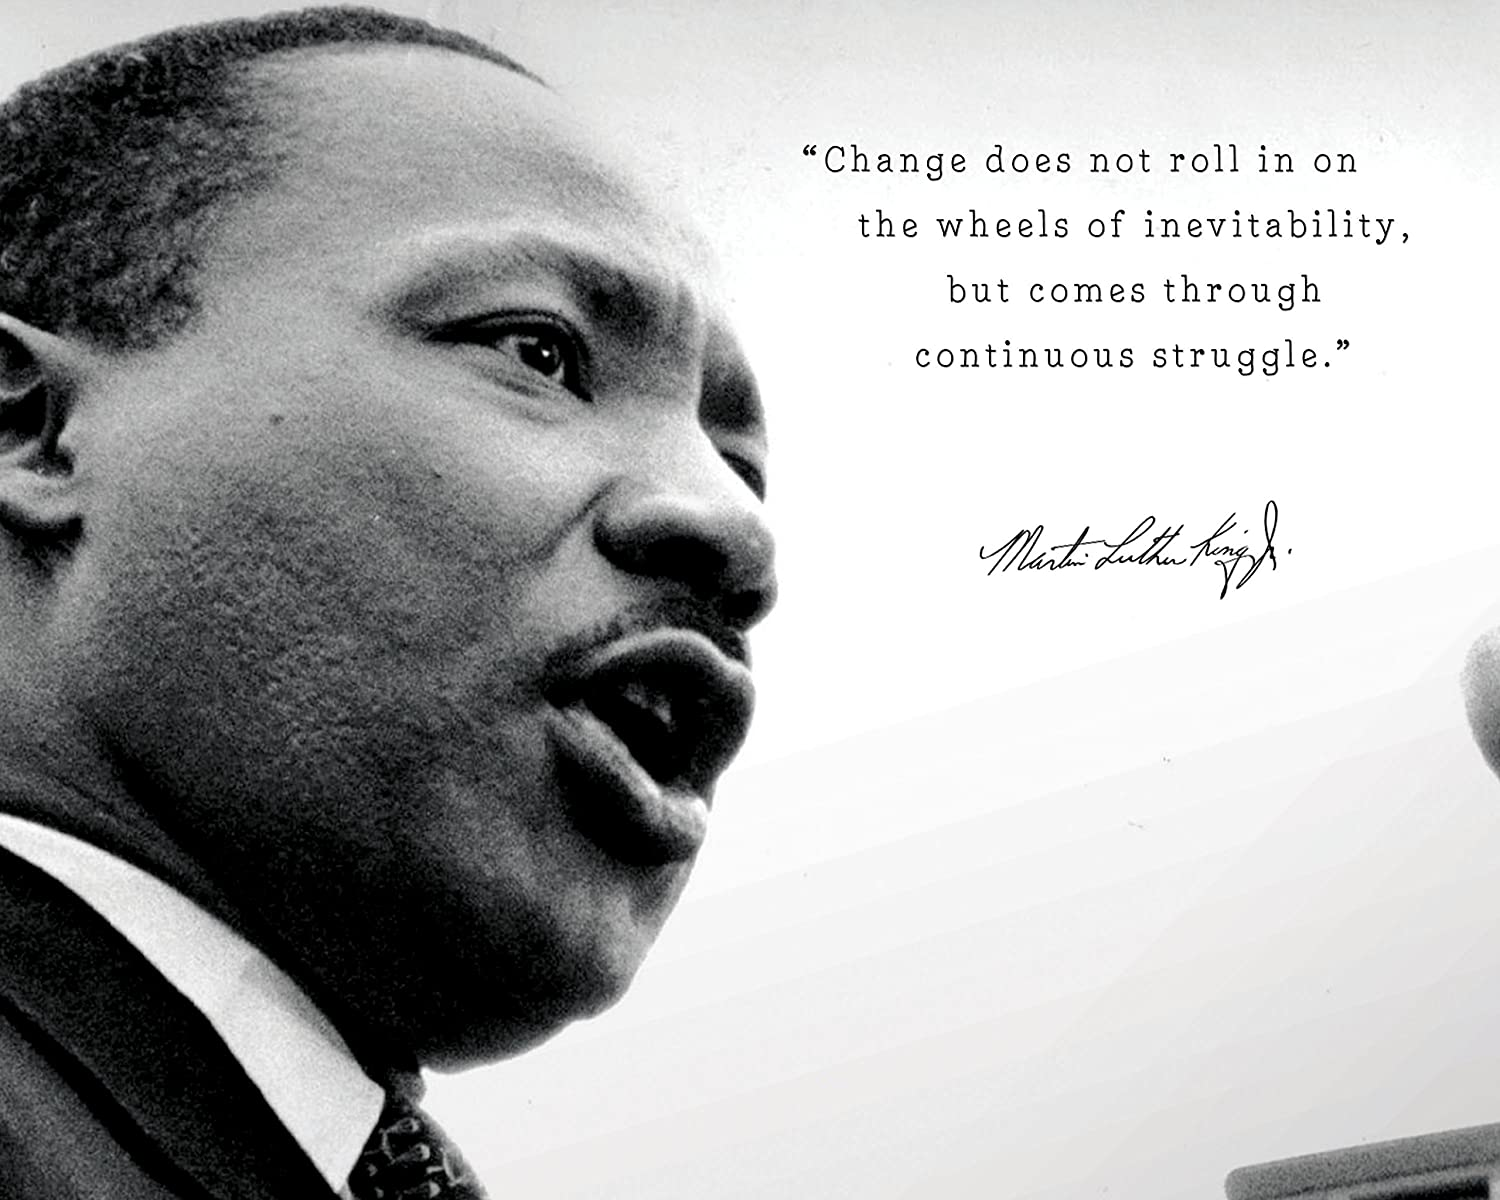 Amazon.com: Martin Luther King Jr Poster Photo Picture Framed Quote Change Does not roll in on The Wheels of Inevitability Famous Inspirational Motivational Quotes (8x10 Unframed Photo): Posters & Prints